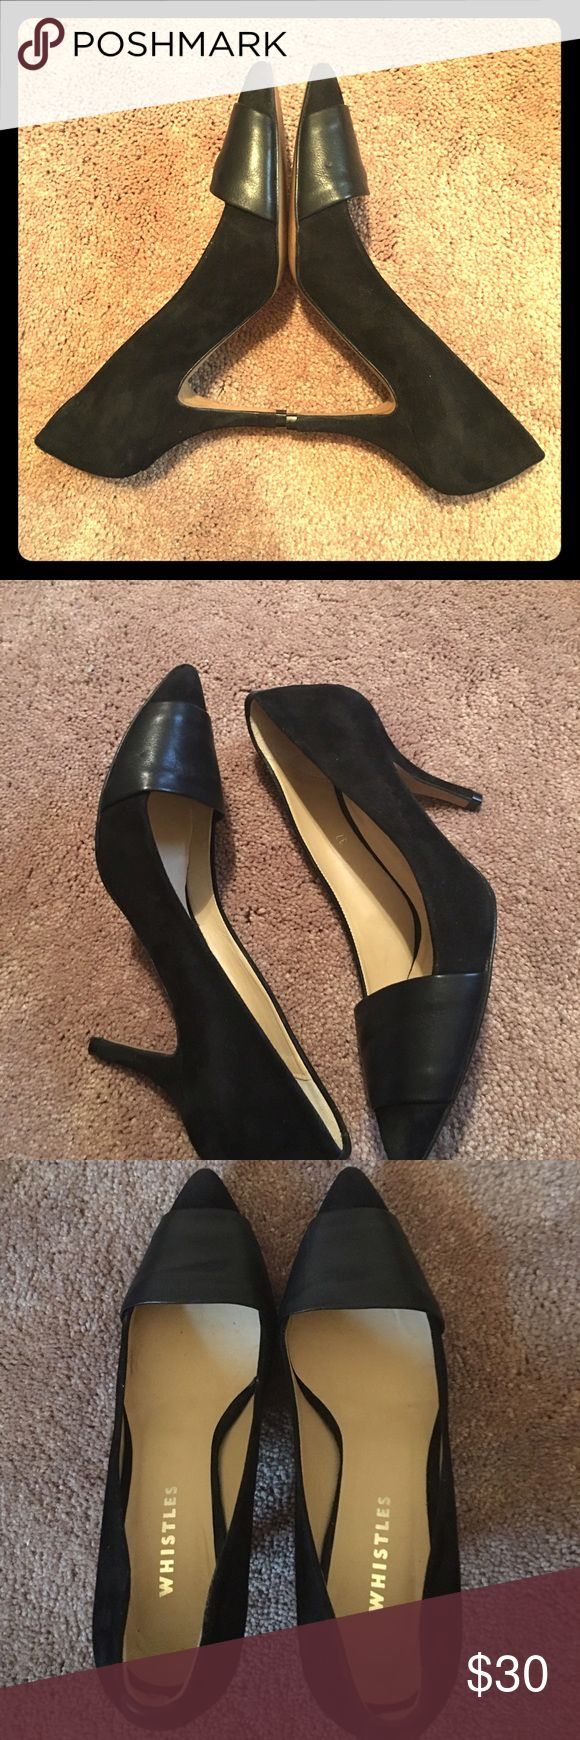 Must have heels Gorgeous suede and leather 3 inch heels...great condition Whistles Shoes Heels